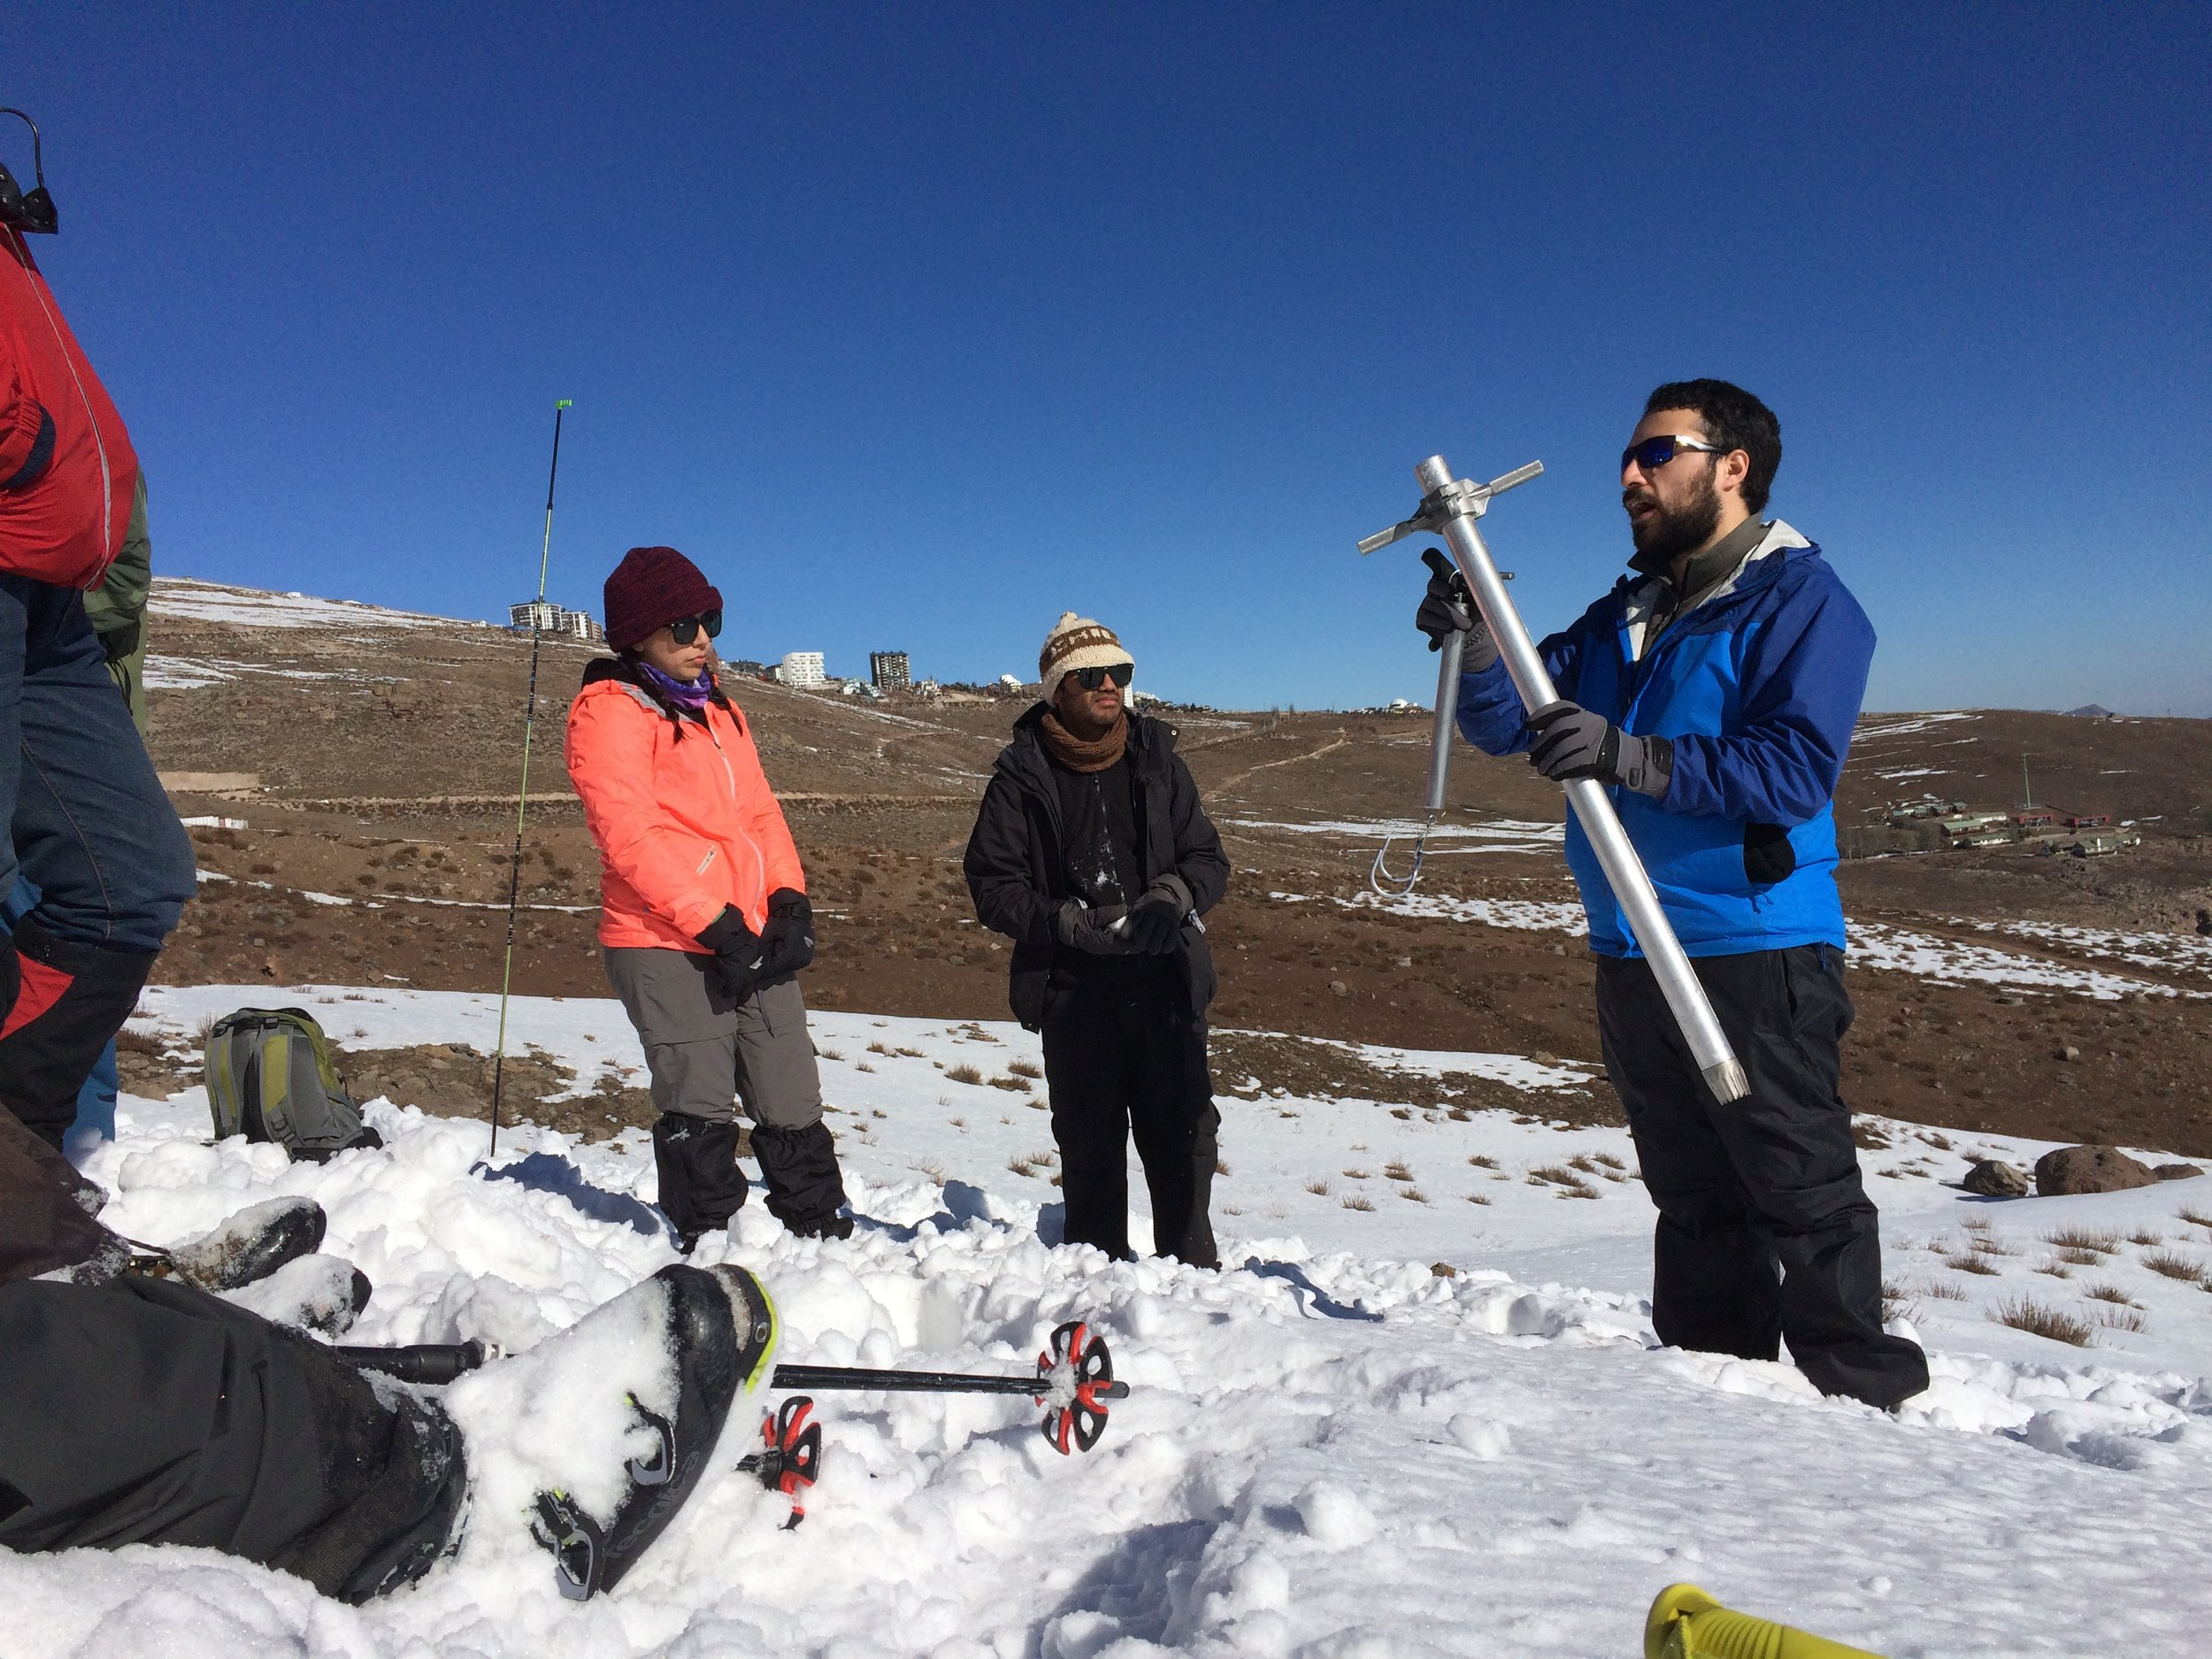 The Federal Snow Sampler can be used to quickly determine a bulk estimate of snow water equivalent…when not clogged with ice. As an ice climber i can sympathize.